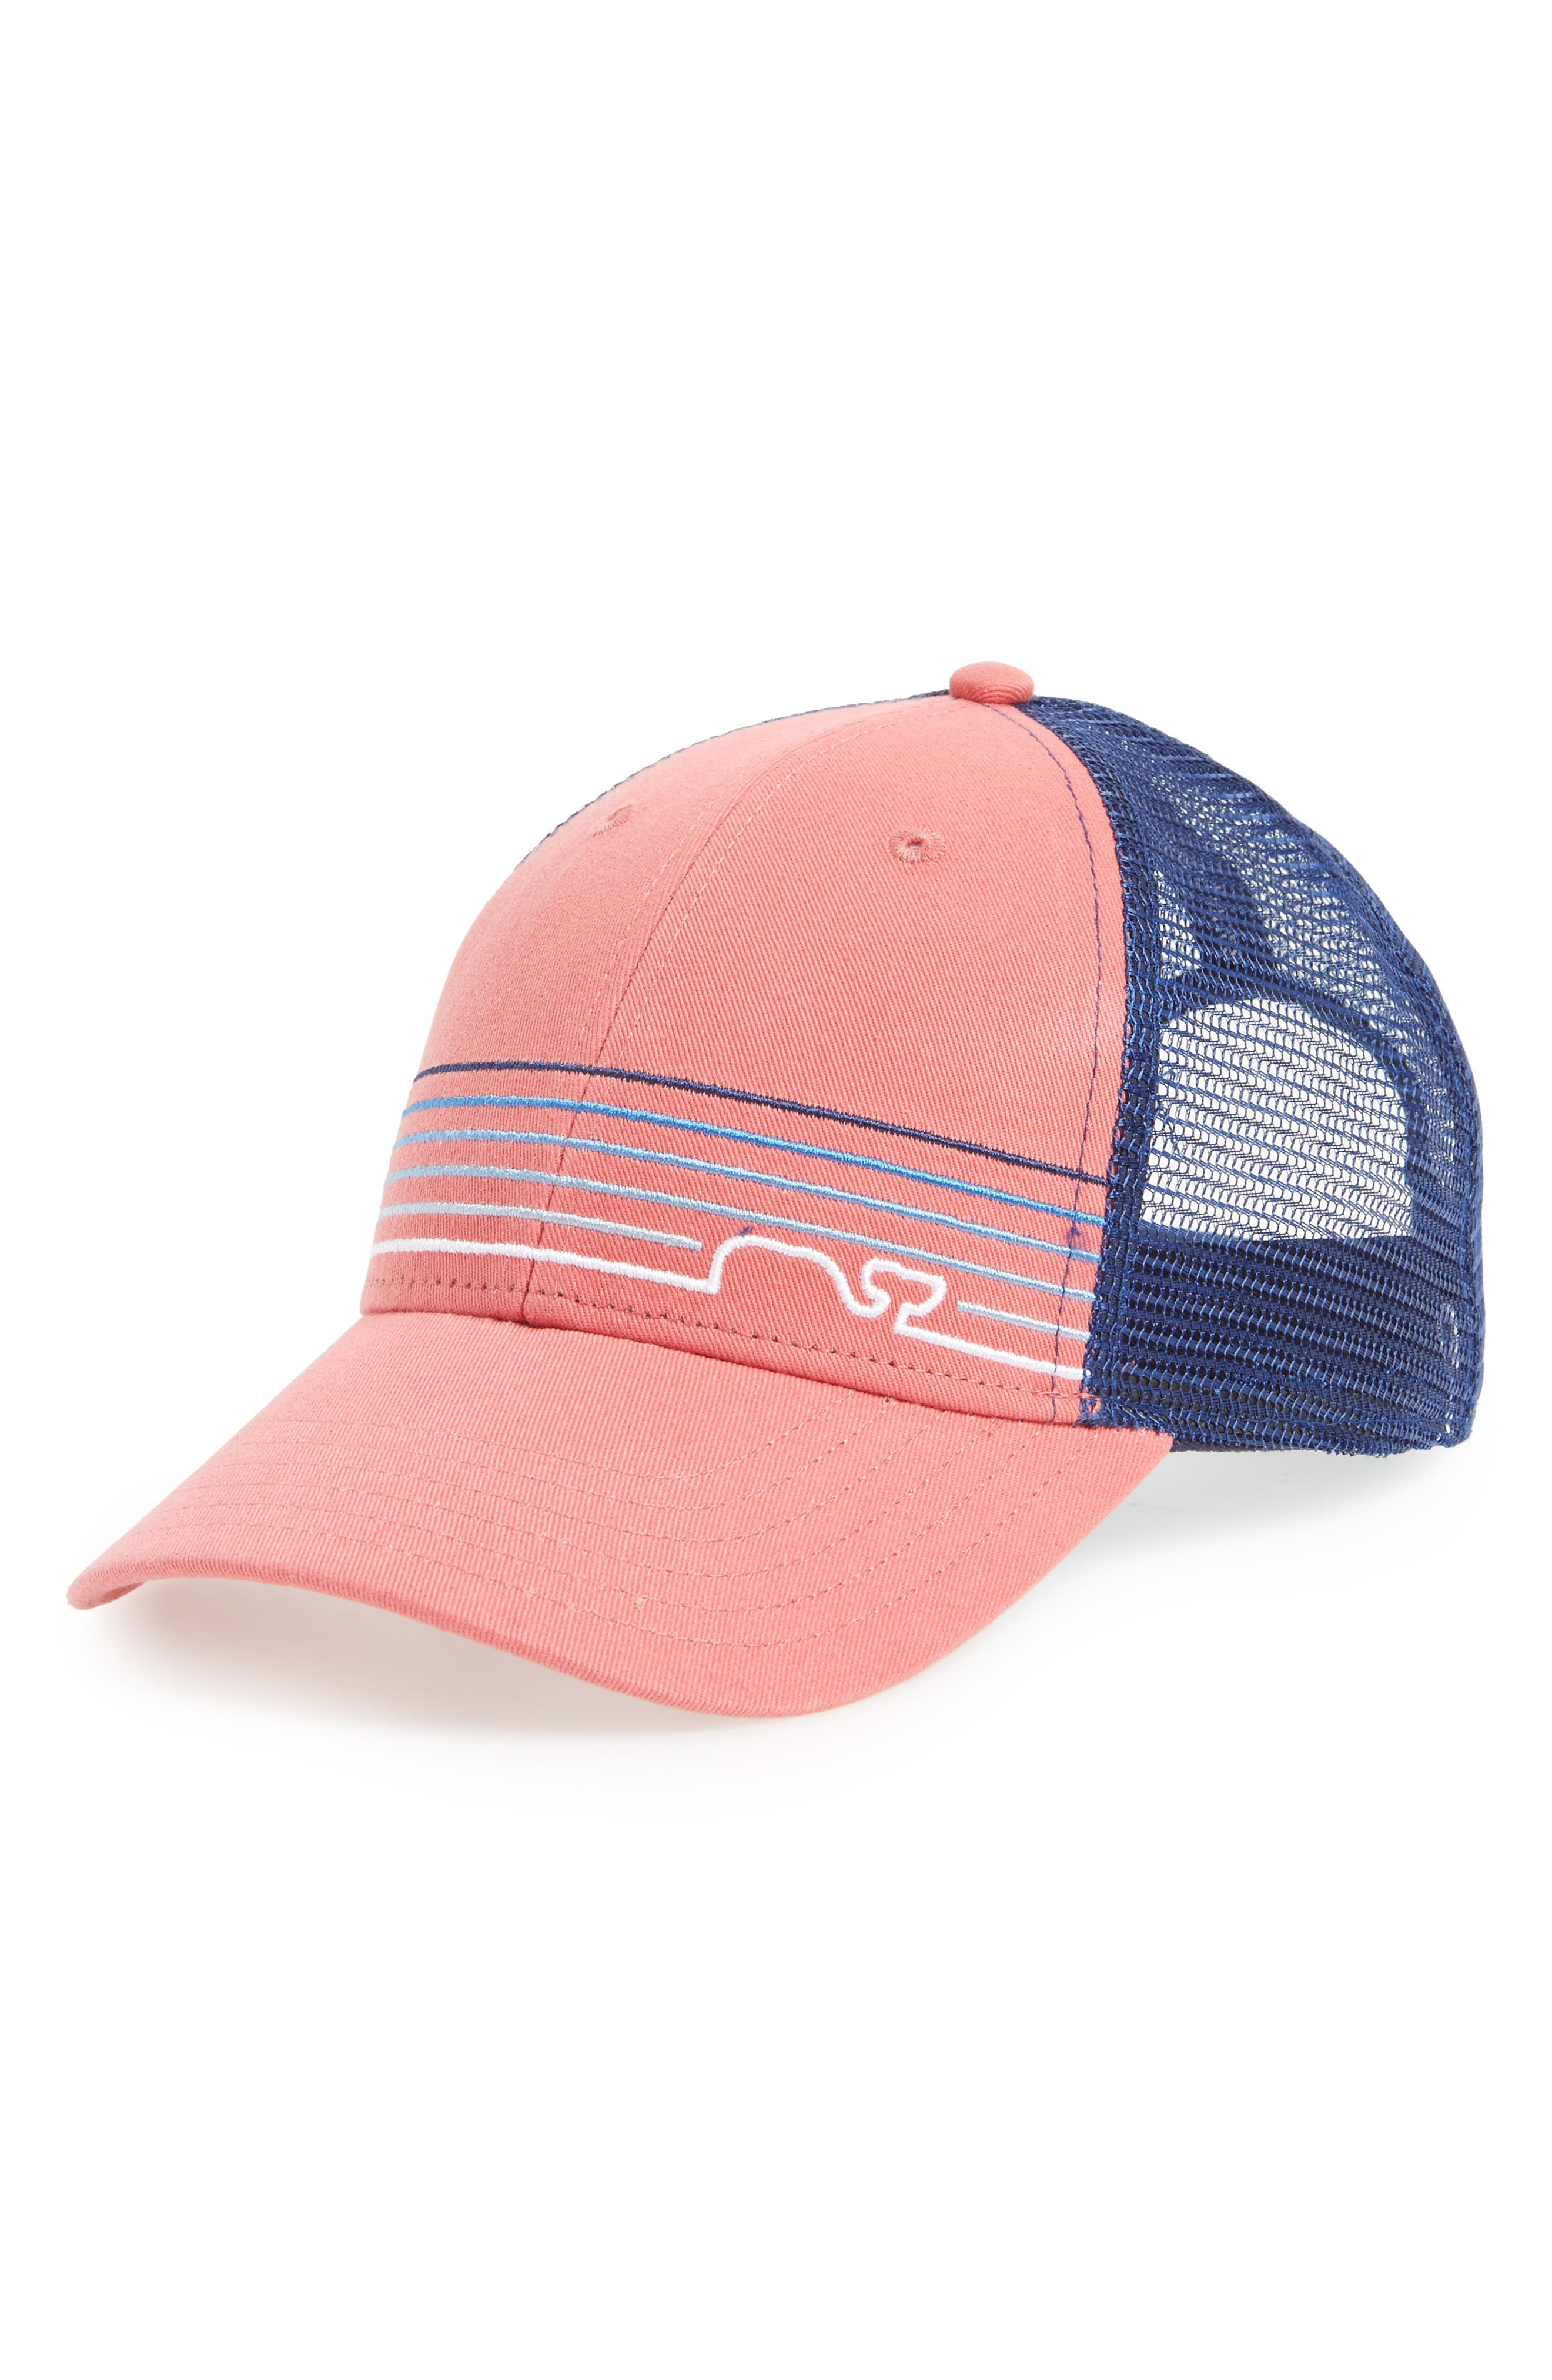 vineyard vines Whaleine Trucker Cap